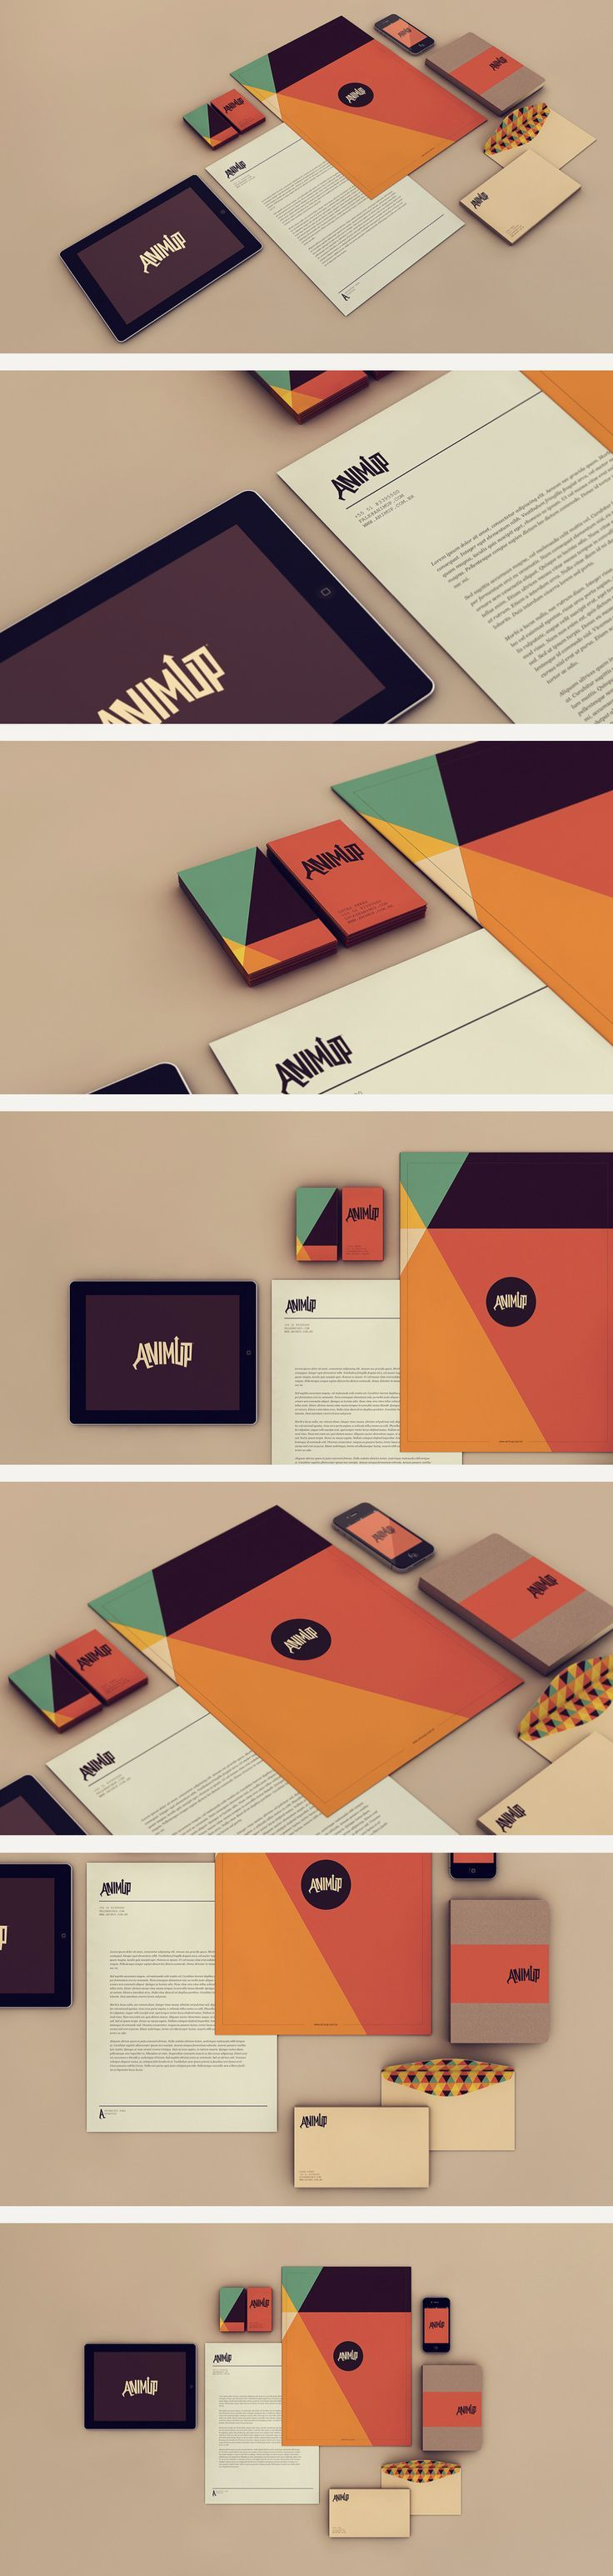 official air jordans for cheap Brand Identity   Corporate Identity   Graphic Design   Animup identity by Isabela Rodrigues